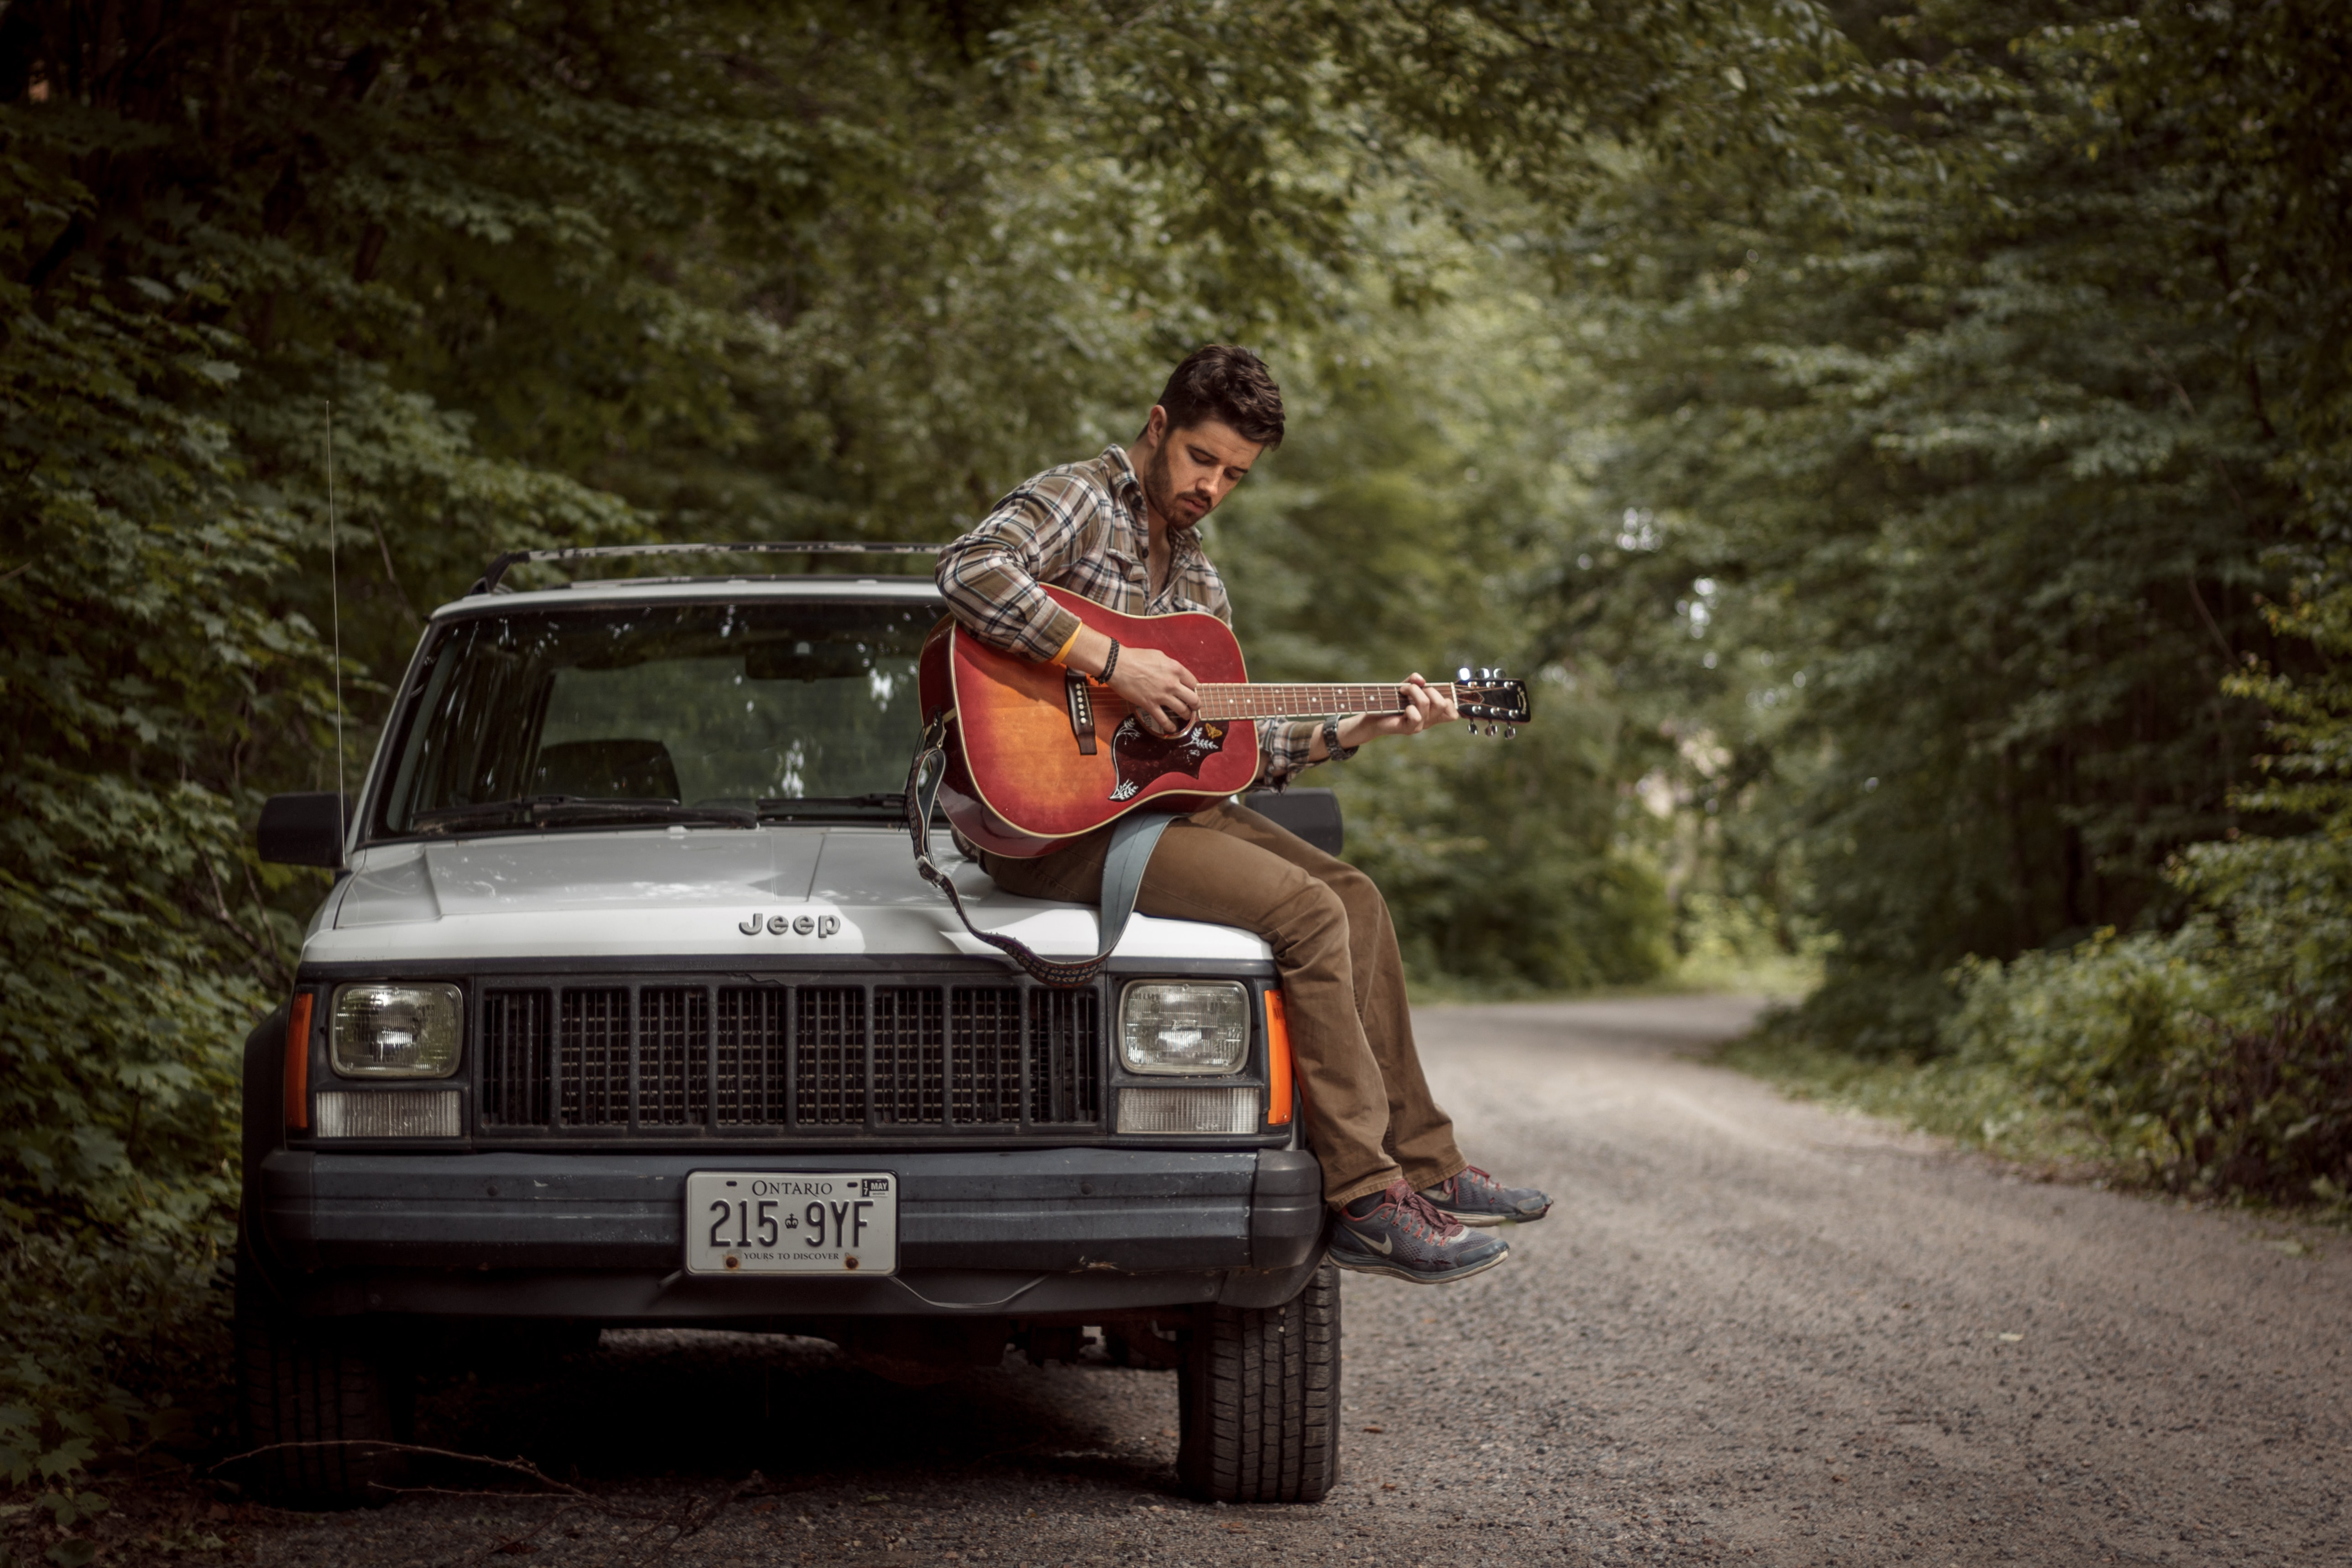 Musician sitting atop his jeep playing guitar on a country road